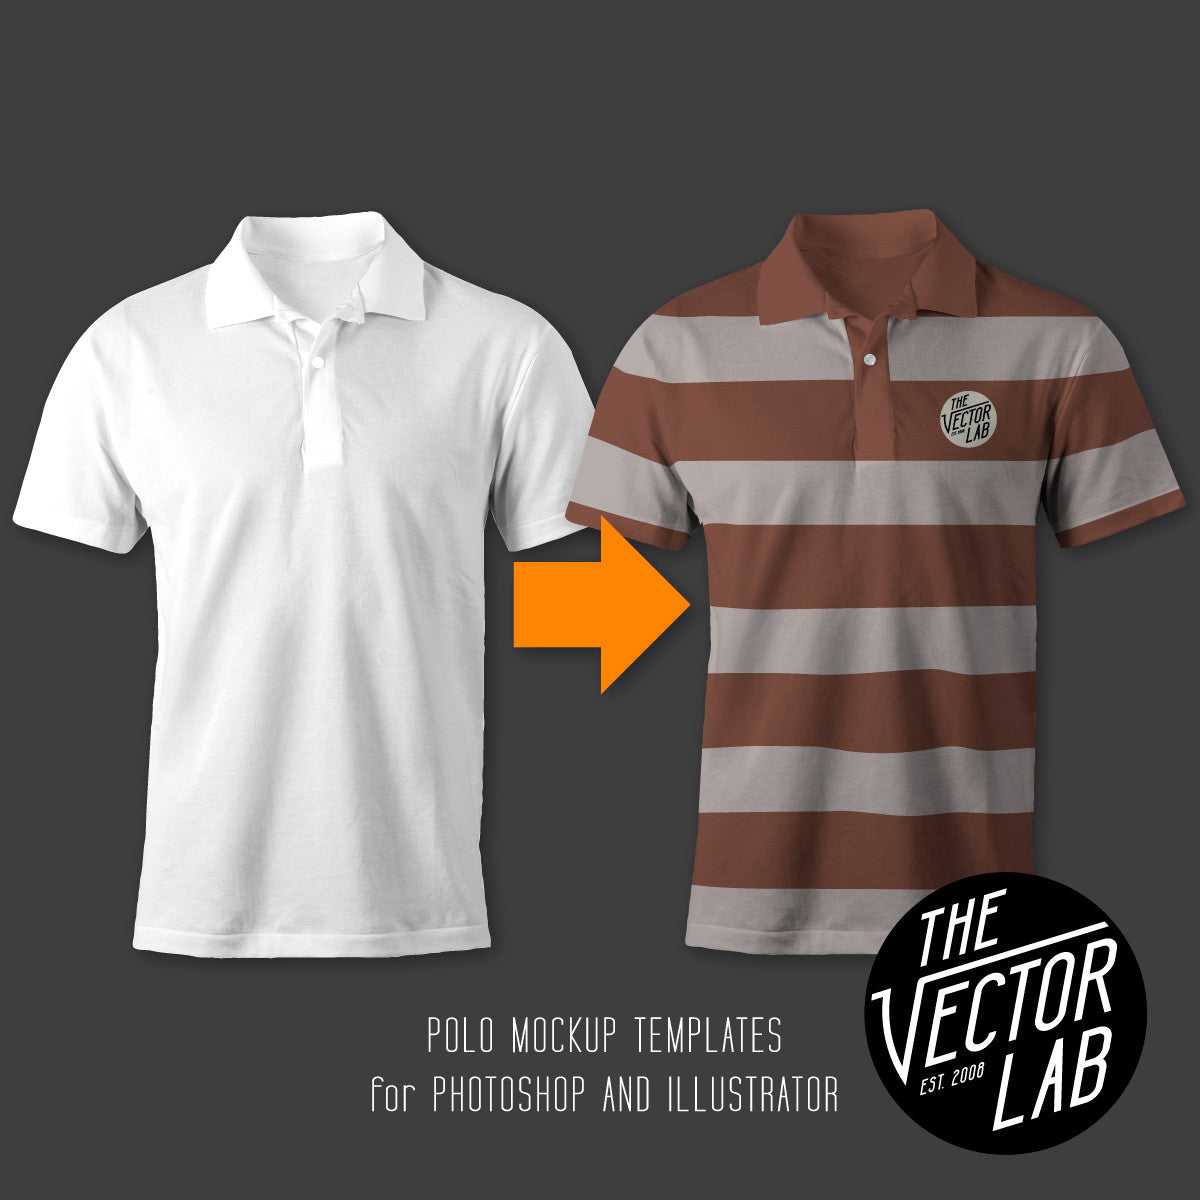 b132fa77 ... Men's Polo Mockup Templates - Photoshop PSD and Adobe Illustrator ...